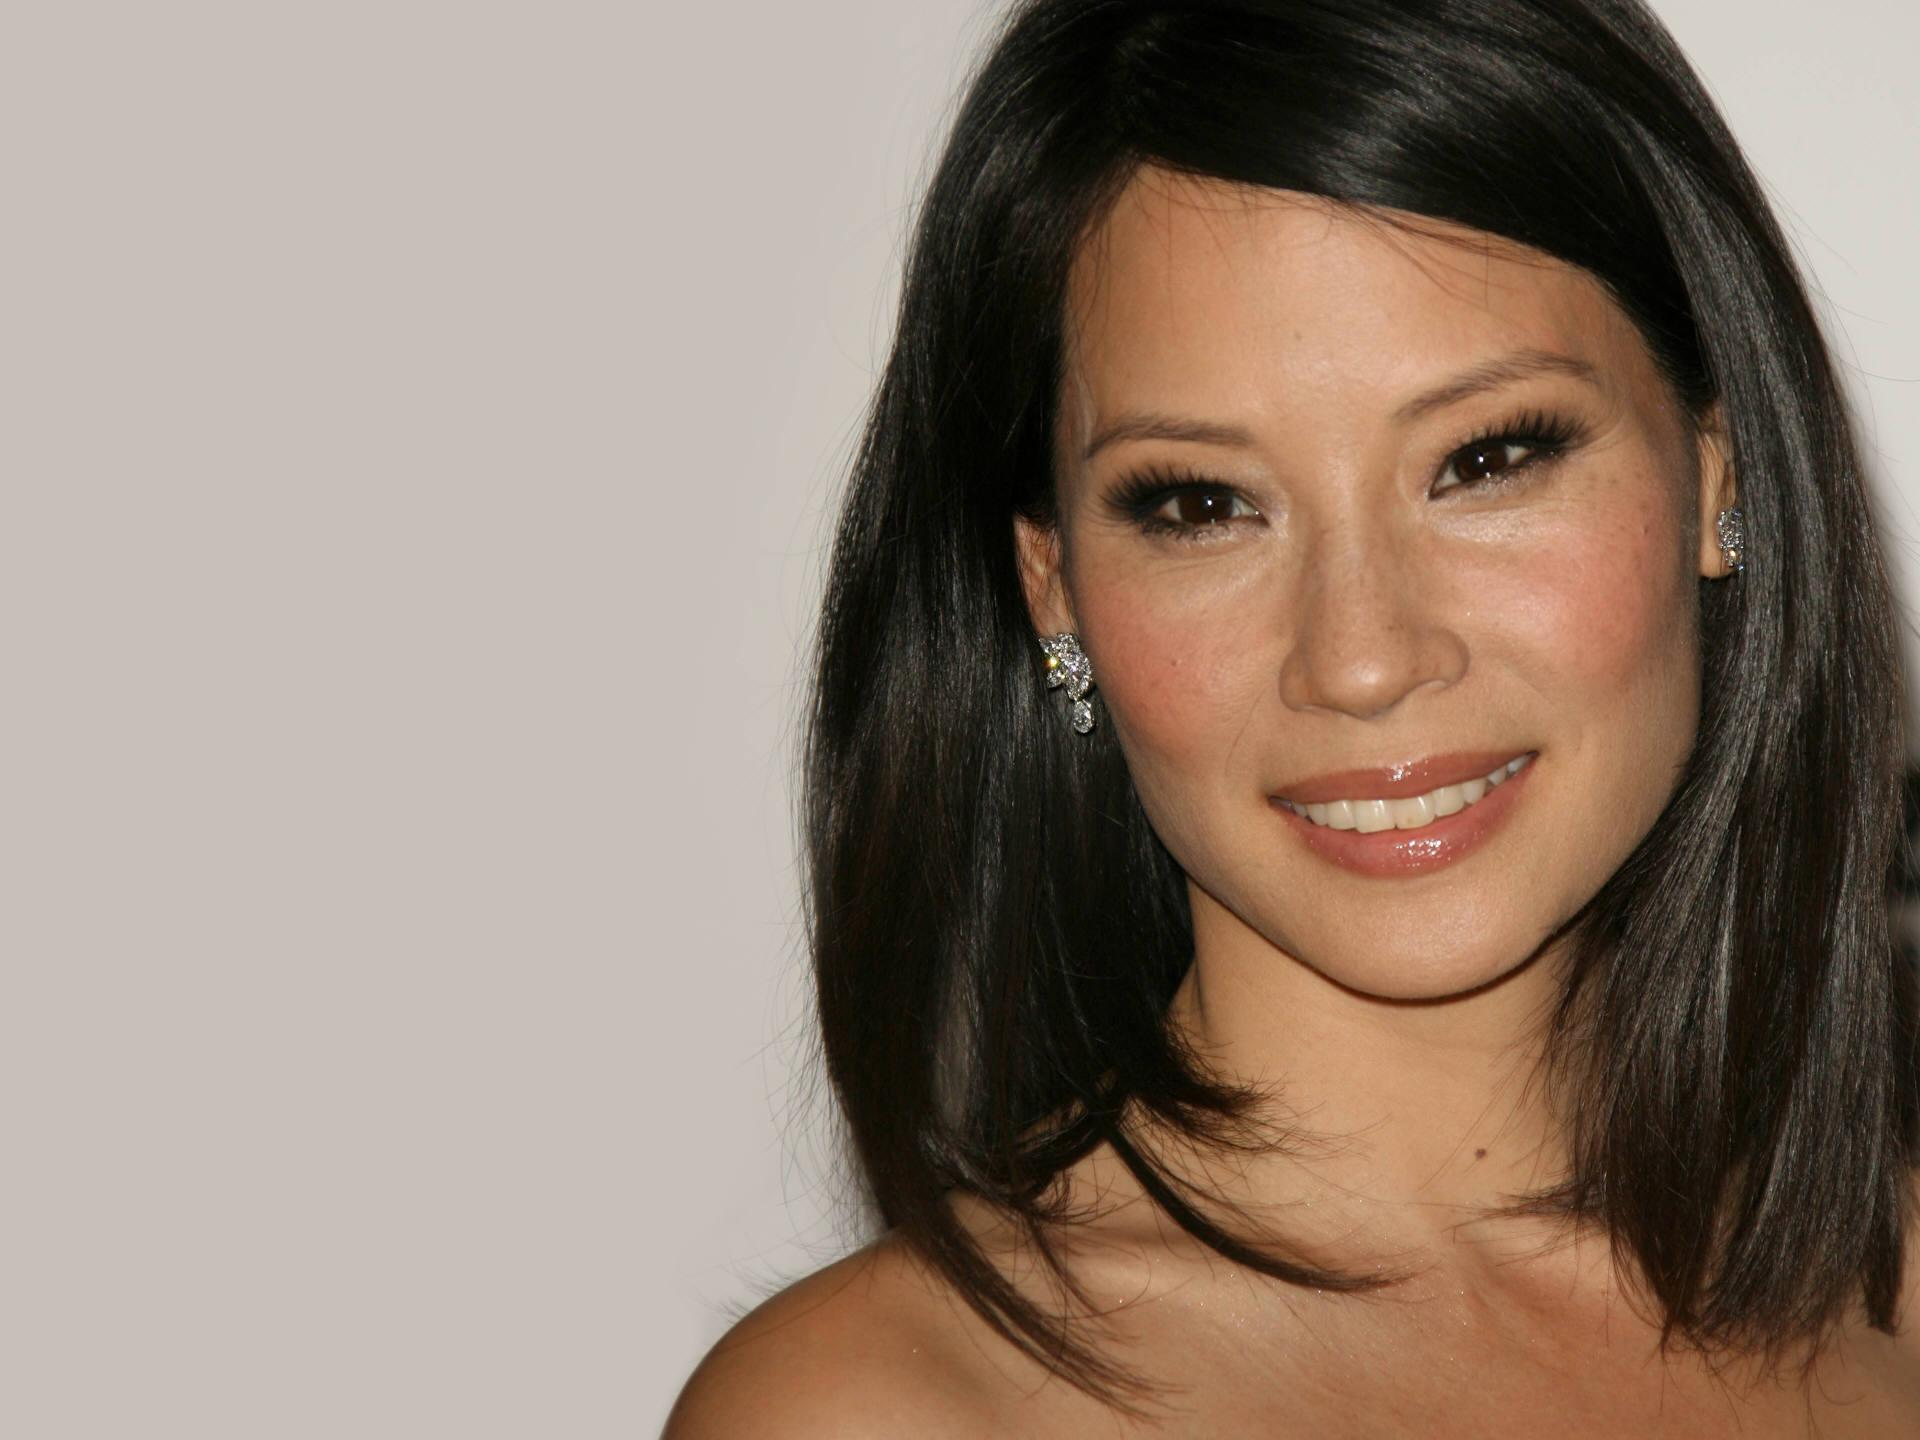 Lucy Liu Wallpapers High Resolution and Quality DownloadLucy Liu